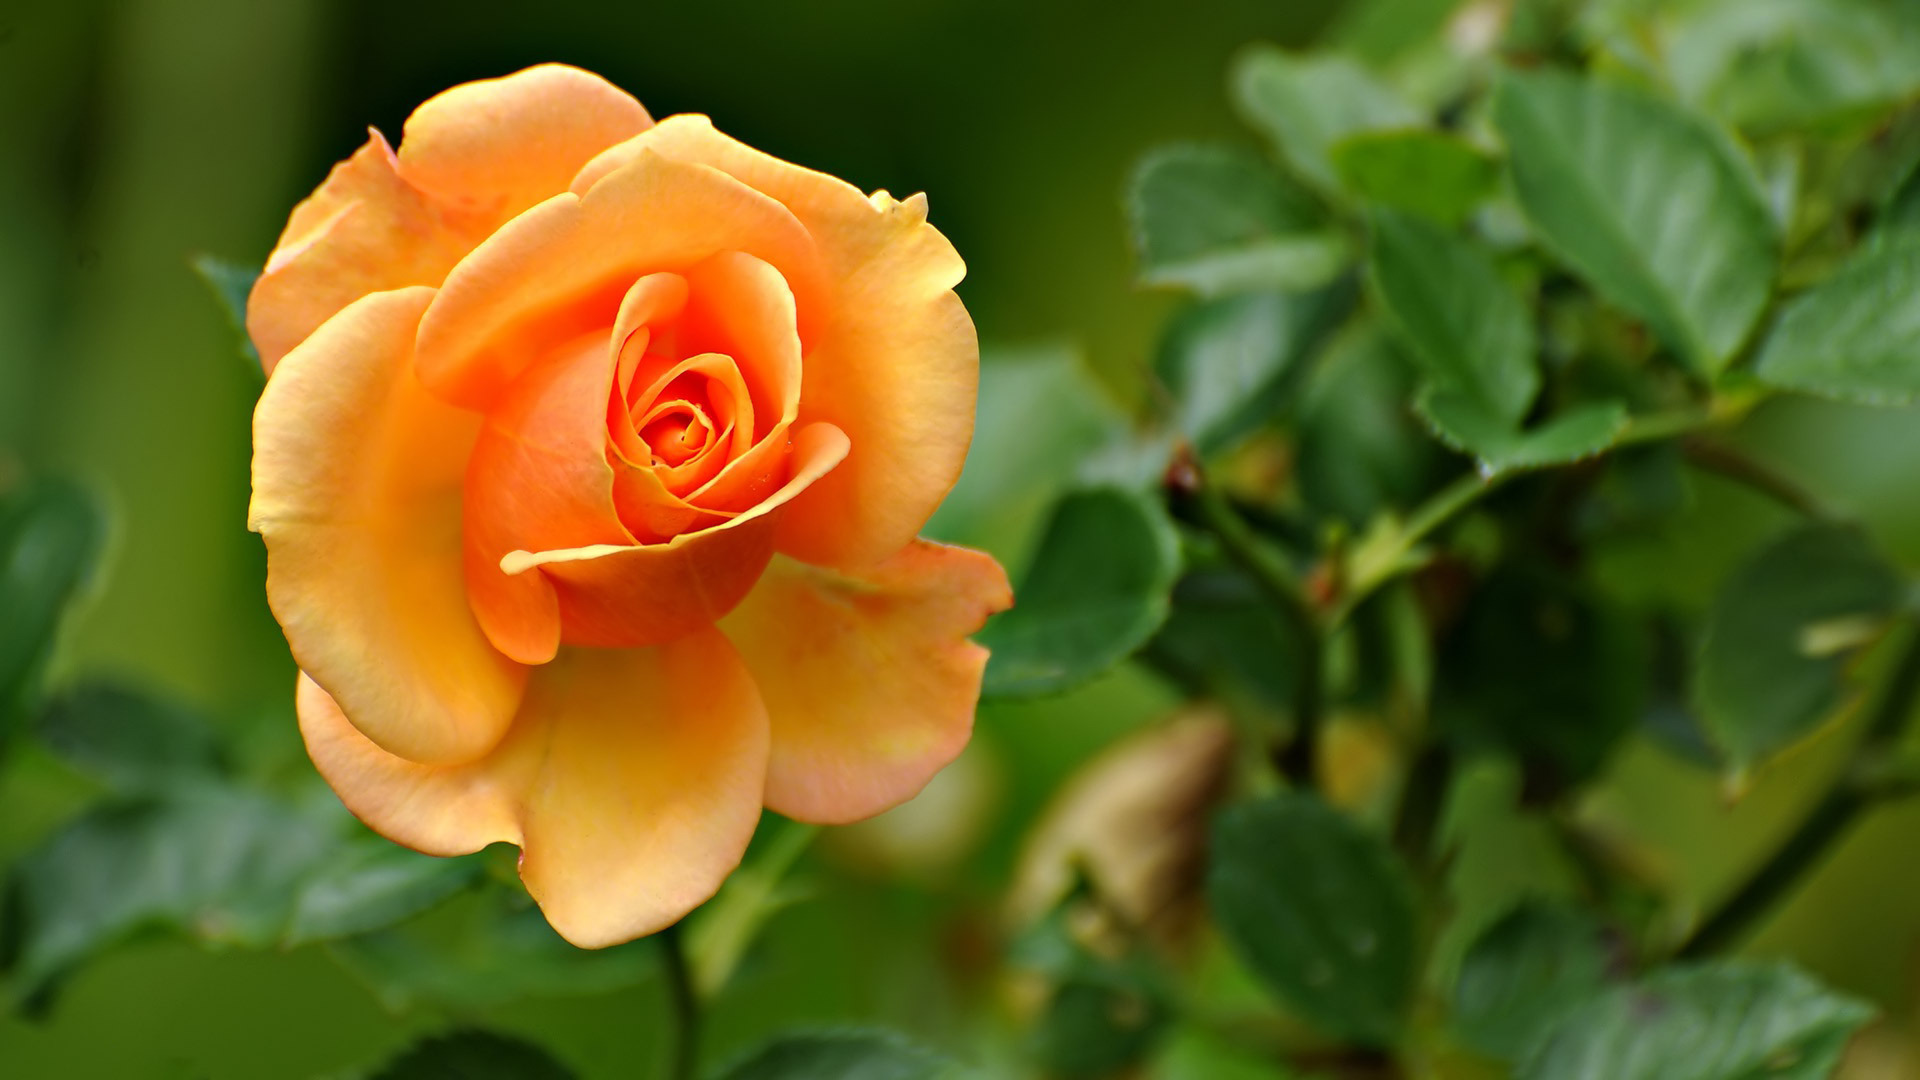 Rose wallpapers - Rose flower images full size hd ...